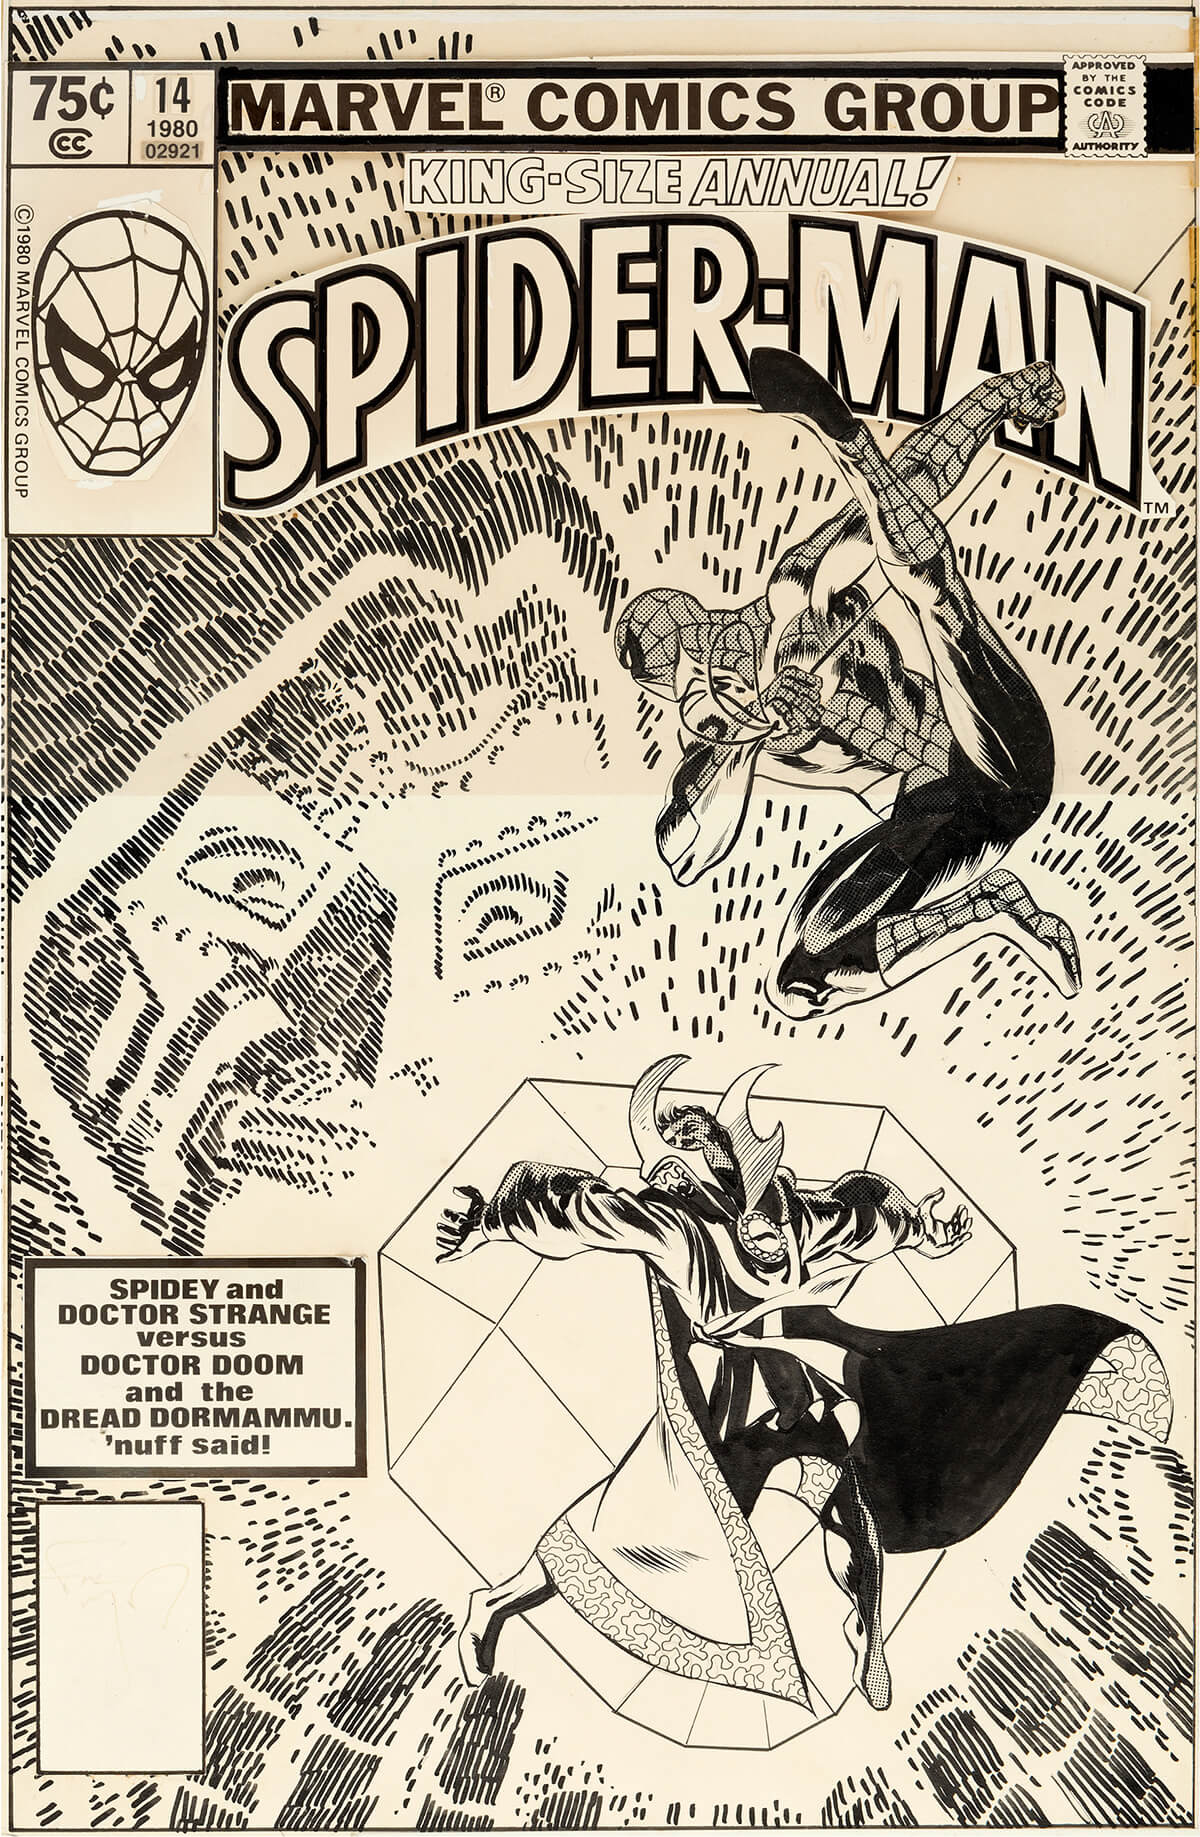 Amazing Spider-Man Annual 14 by Frank Miller